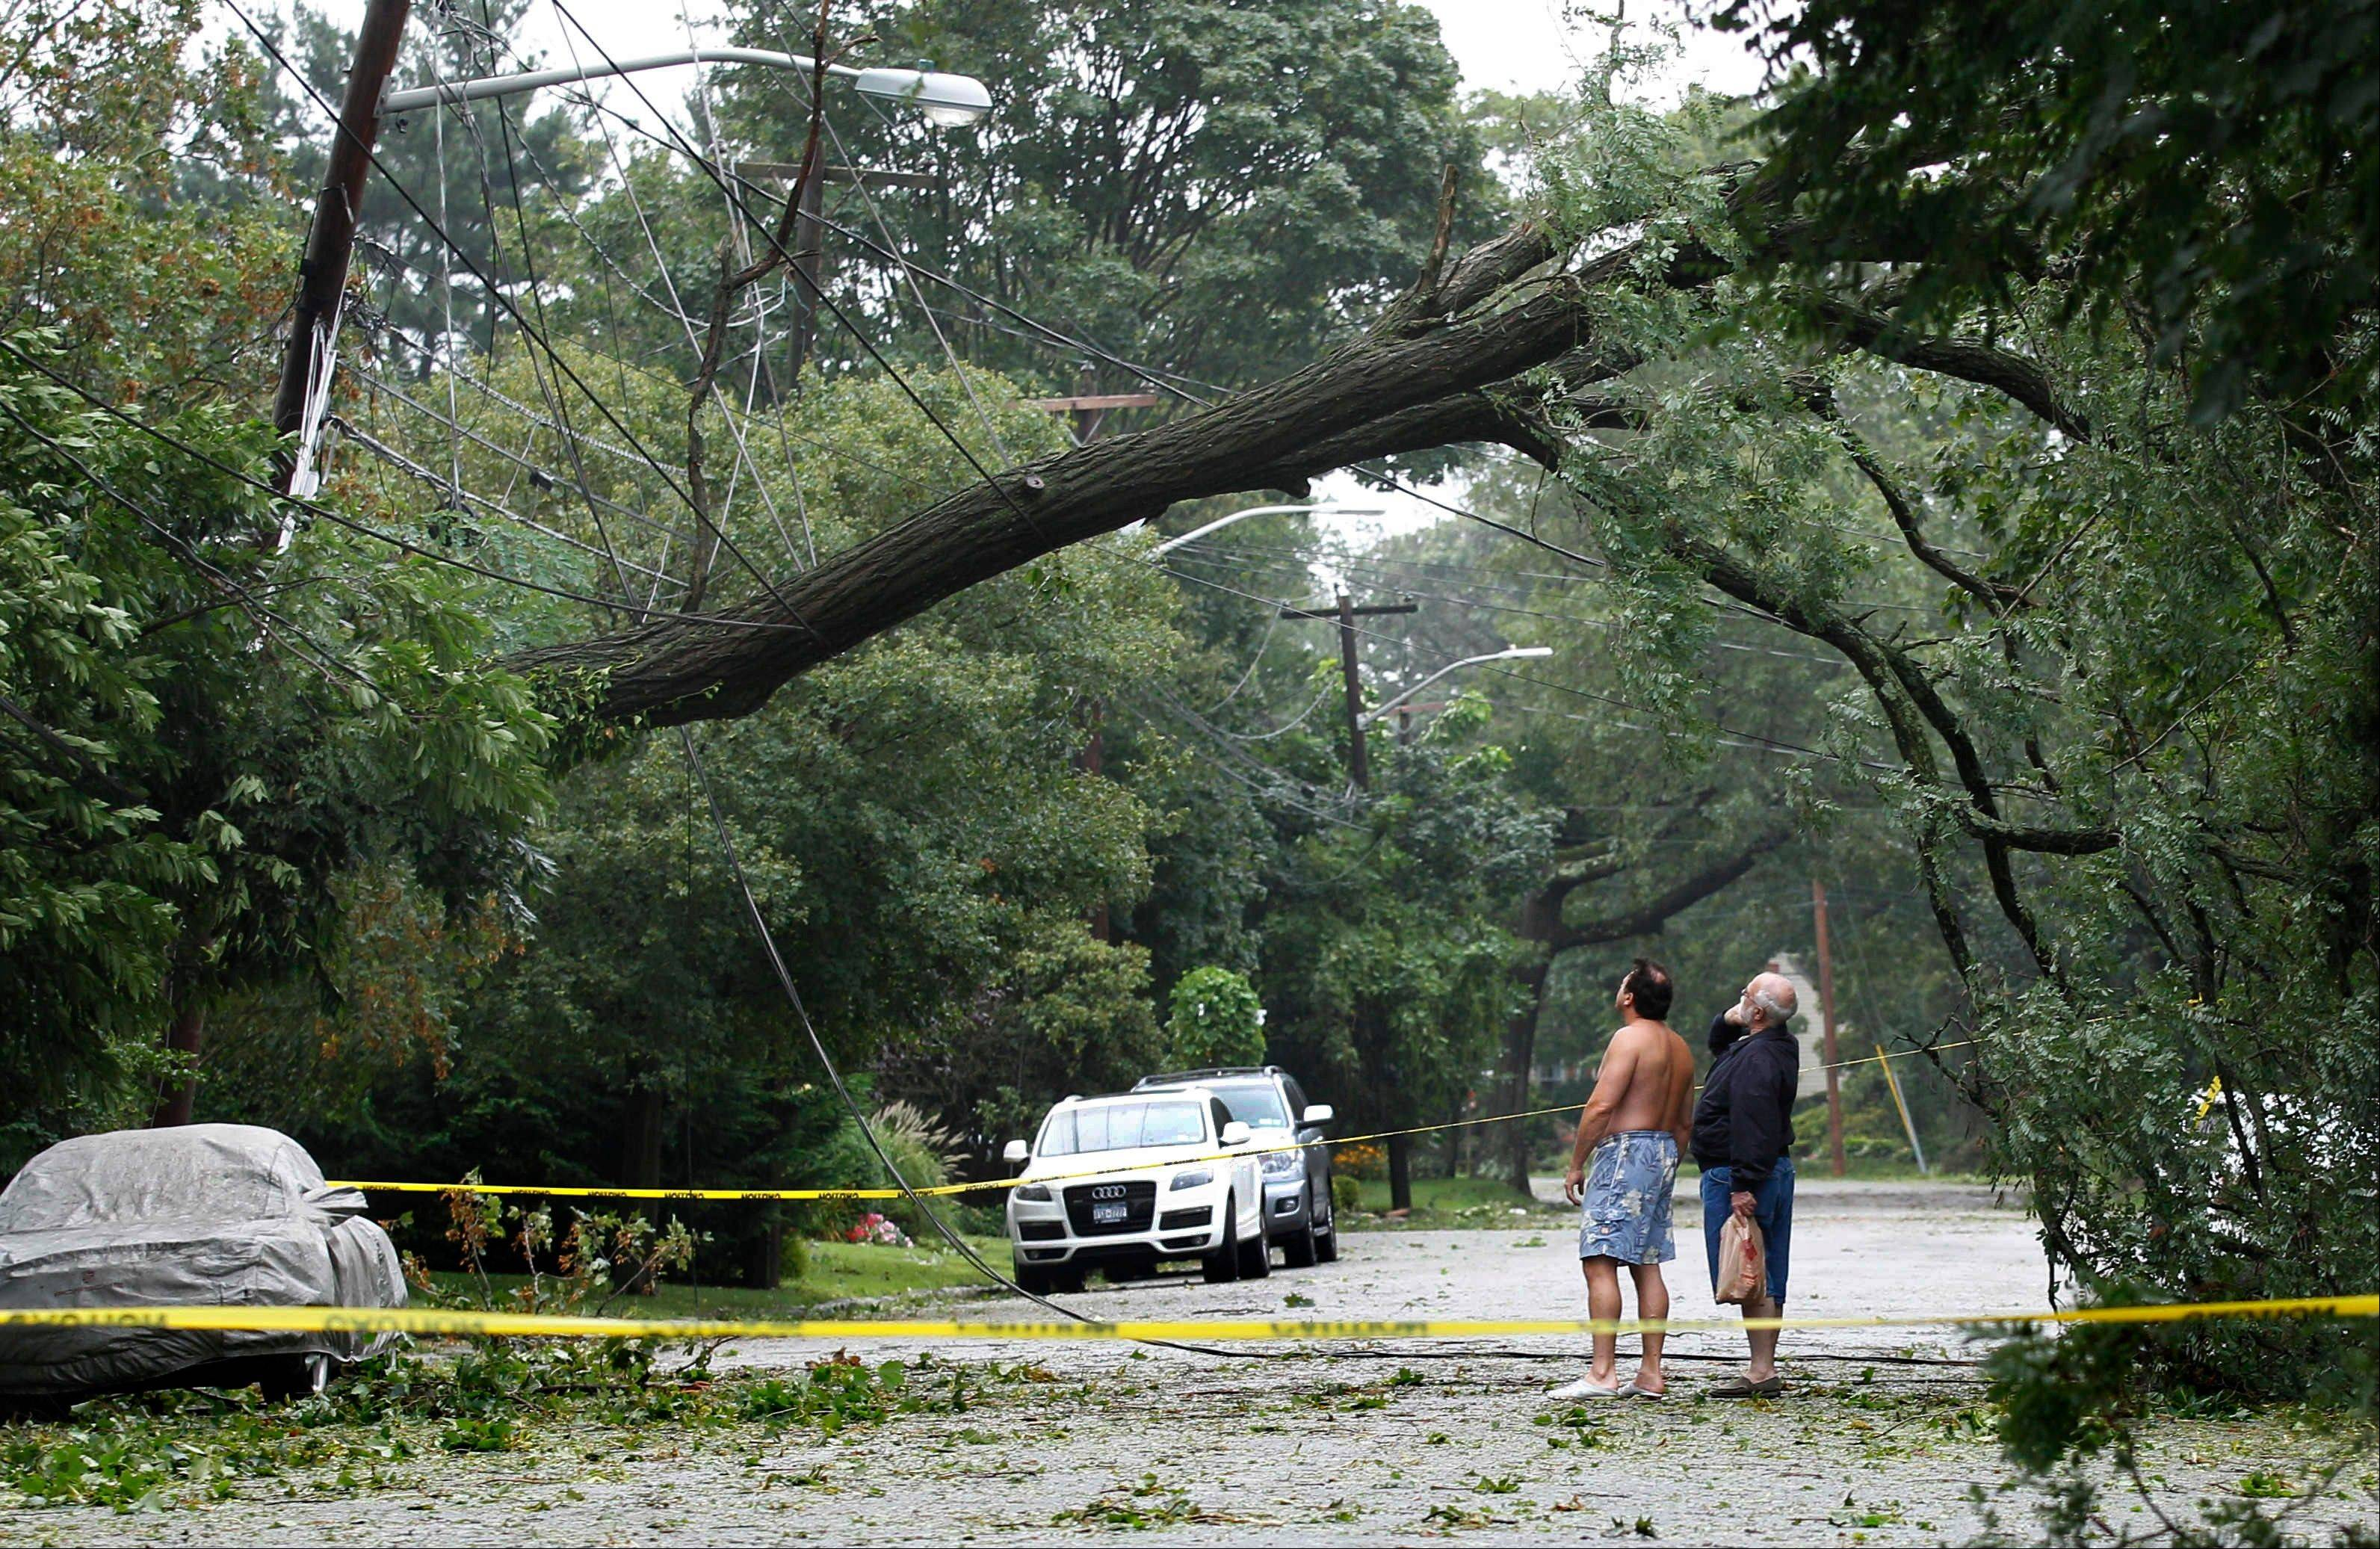 Two pedestrians look up at a large tree resting on power lines after the effects of Tropical Storm Irene cleared the area in Wantagh, N.Y., on Long Island, Sunday, Aug. 28, 2011. Irene weakened to winds of 60 mph, well below the 74 mph dividing line between a hurricane and tropical storm. The system was still massive and powerful, forming a figure six that covered the Northeast. It was moving twice as fast as the day before.